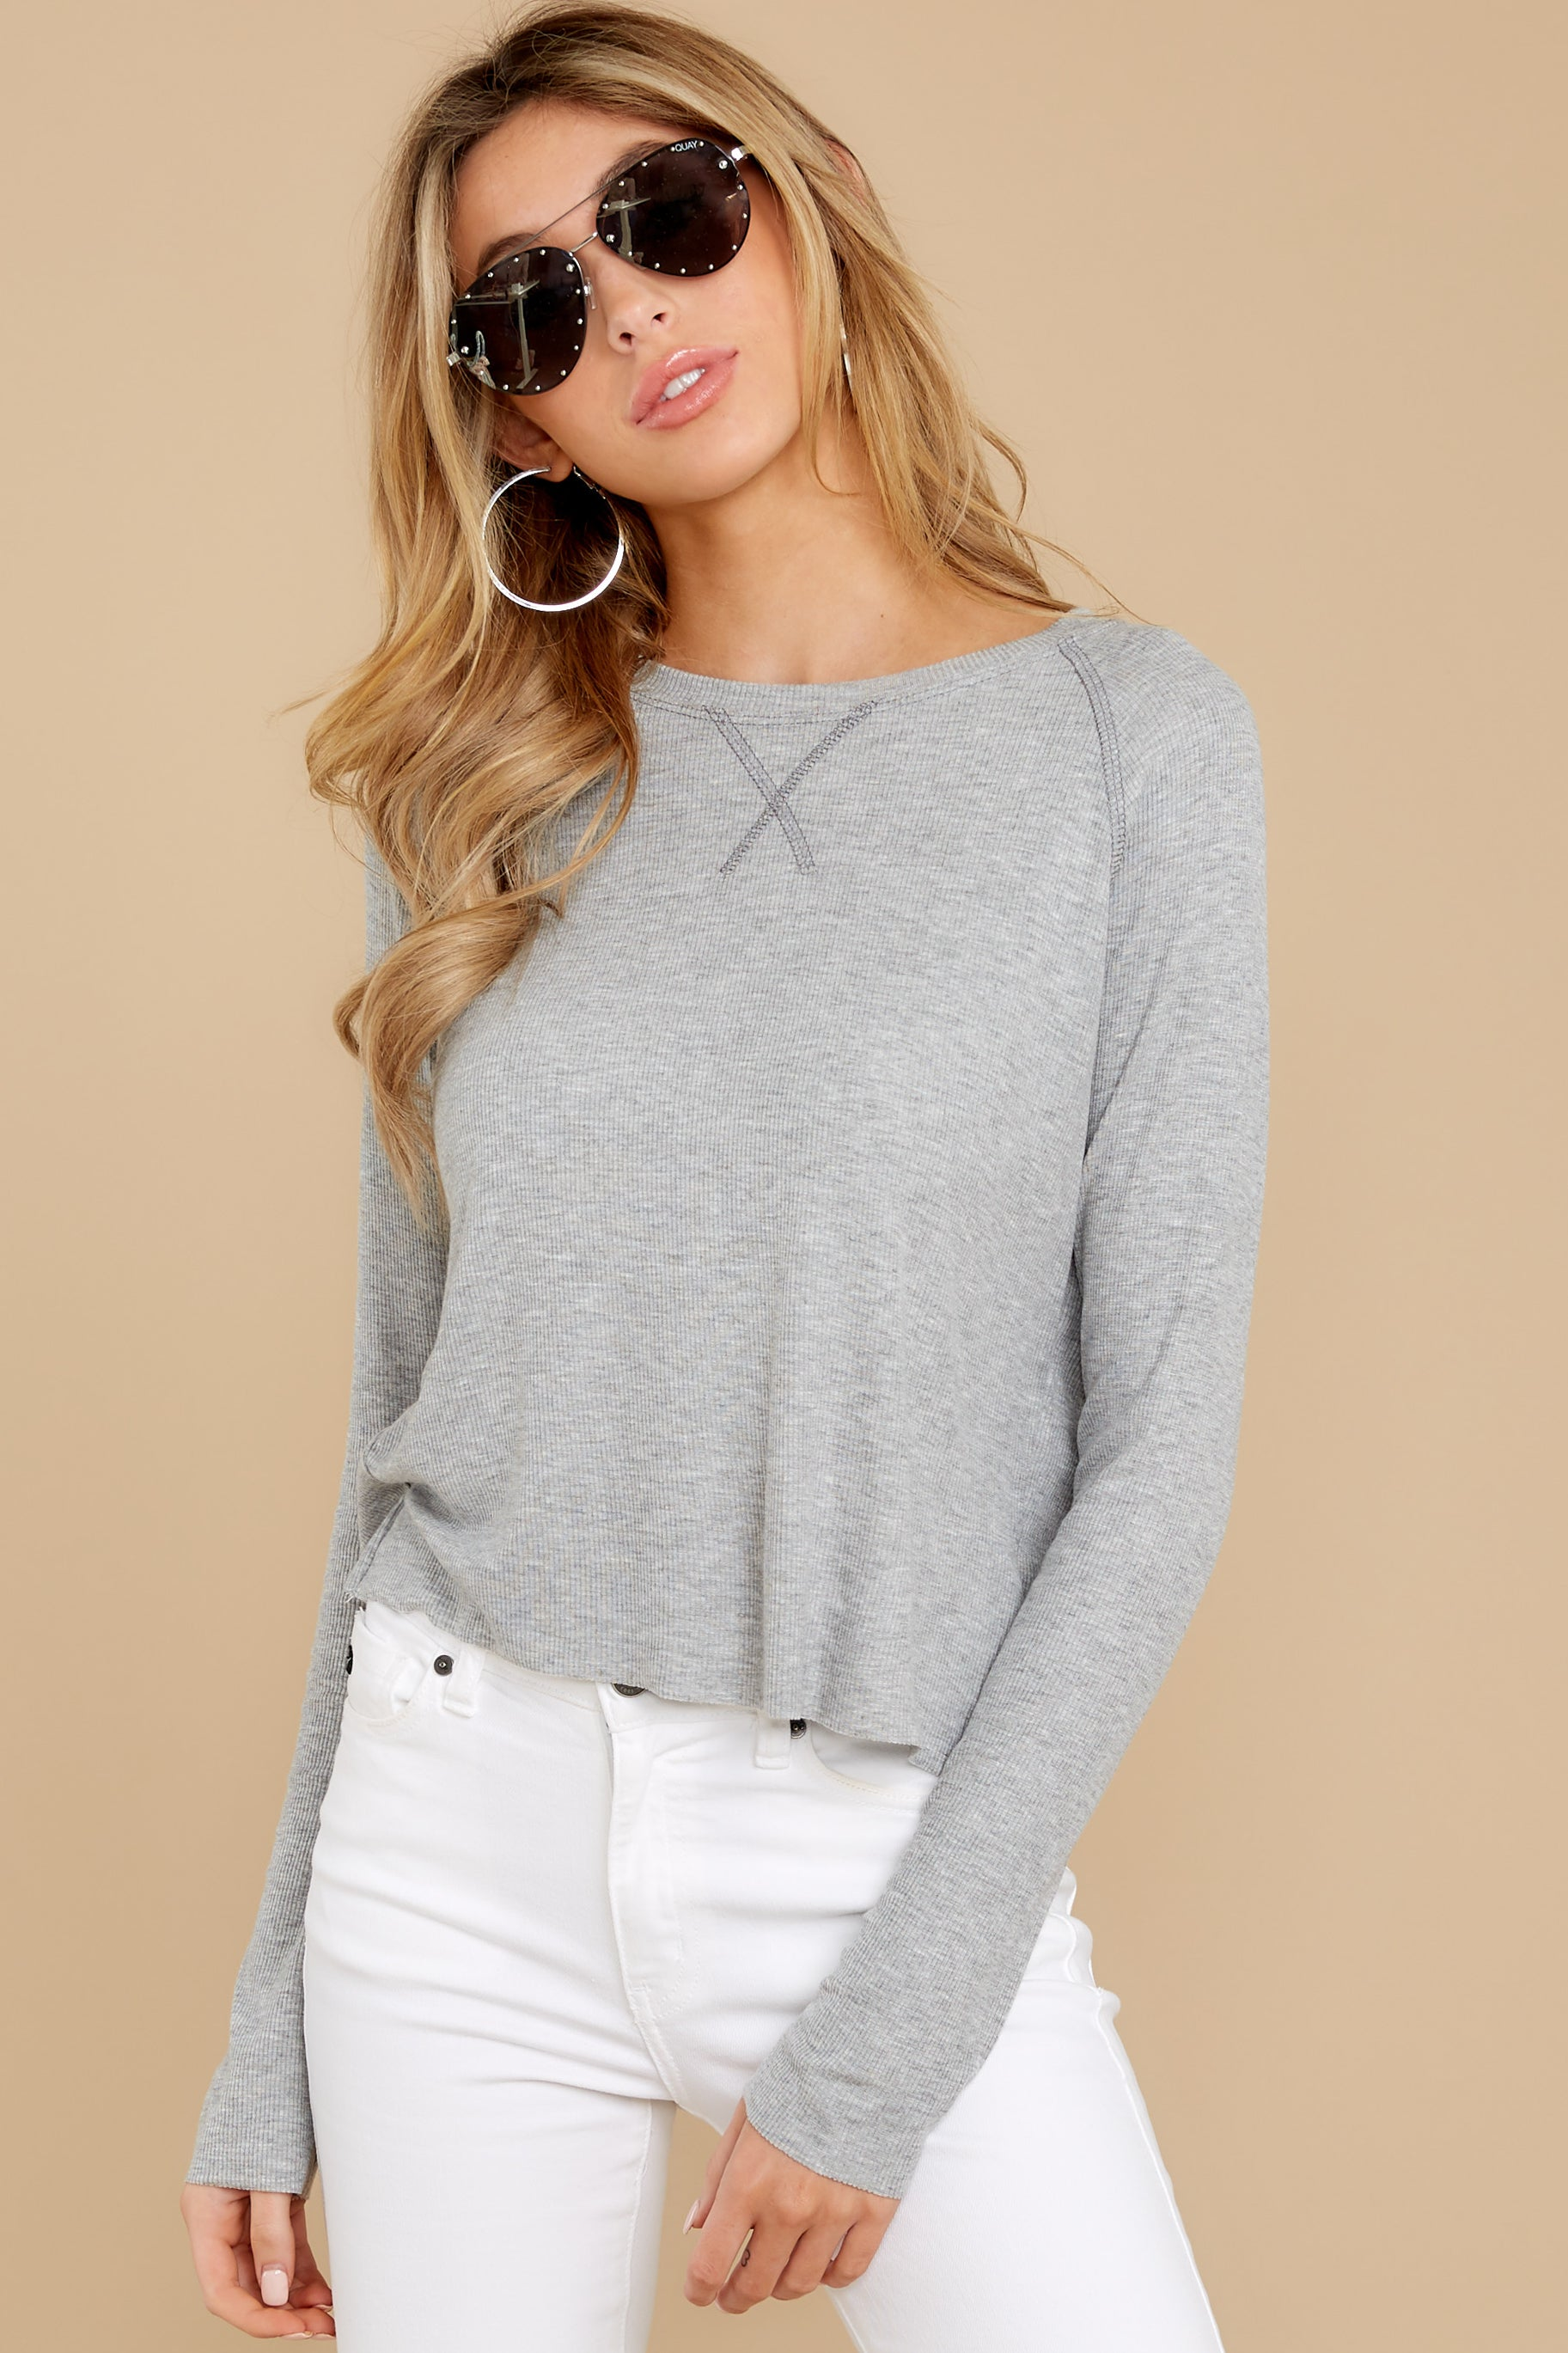 7 No Looking Back Grey Top at reddressboutique.com